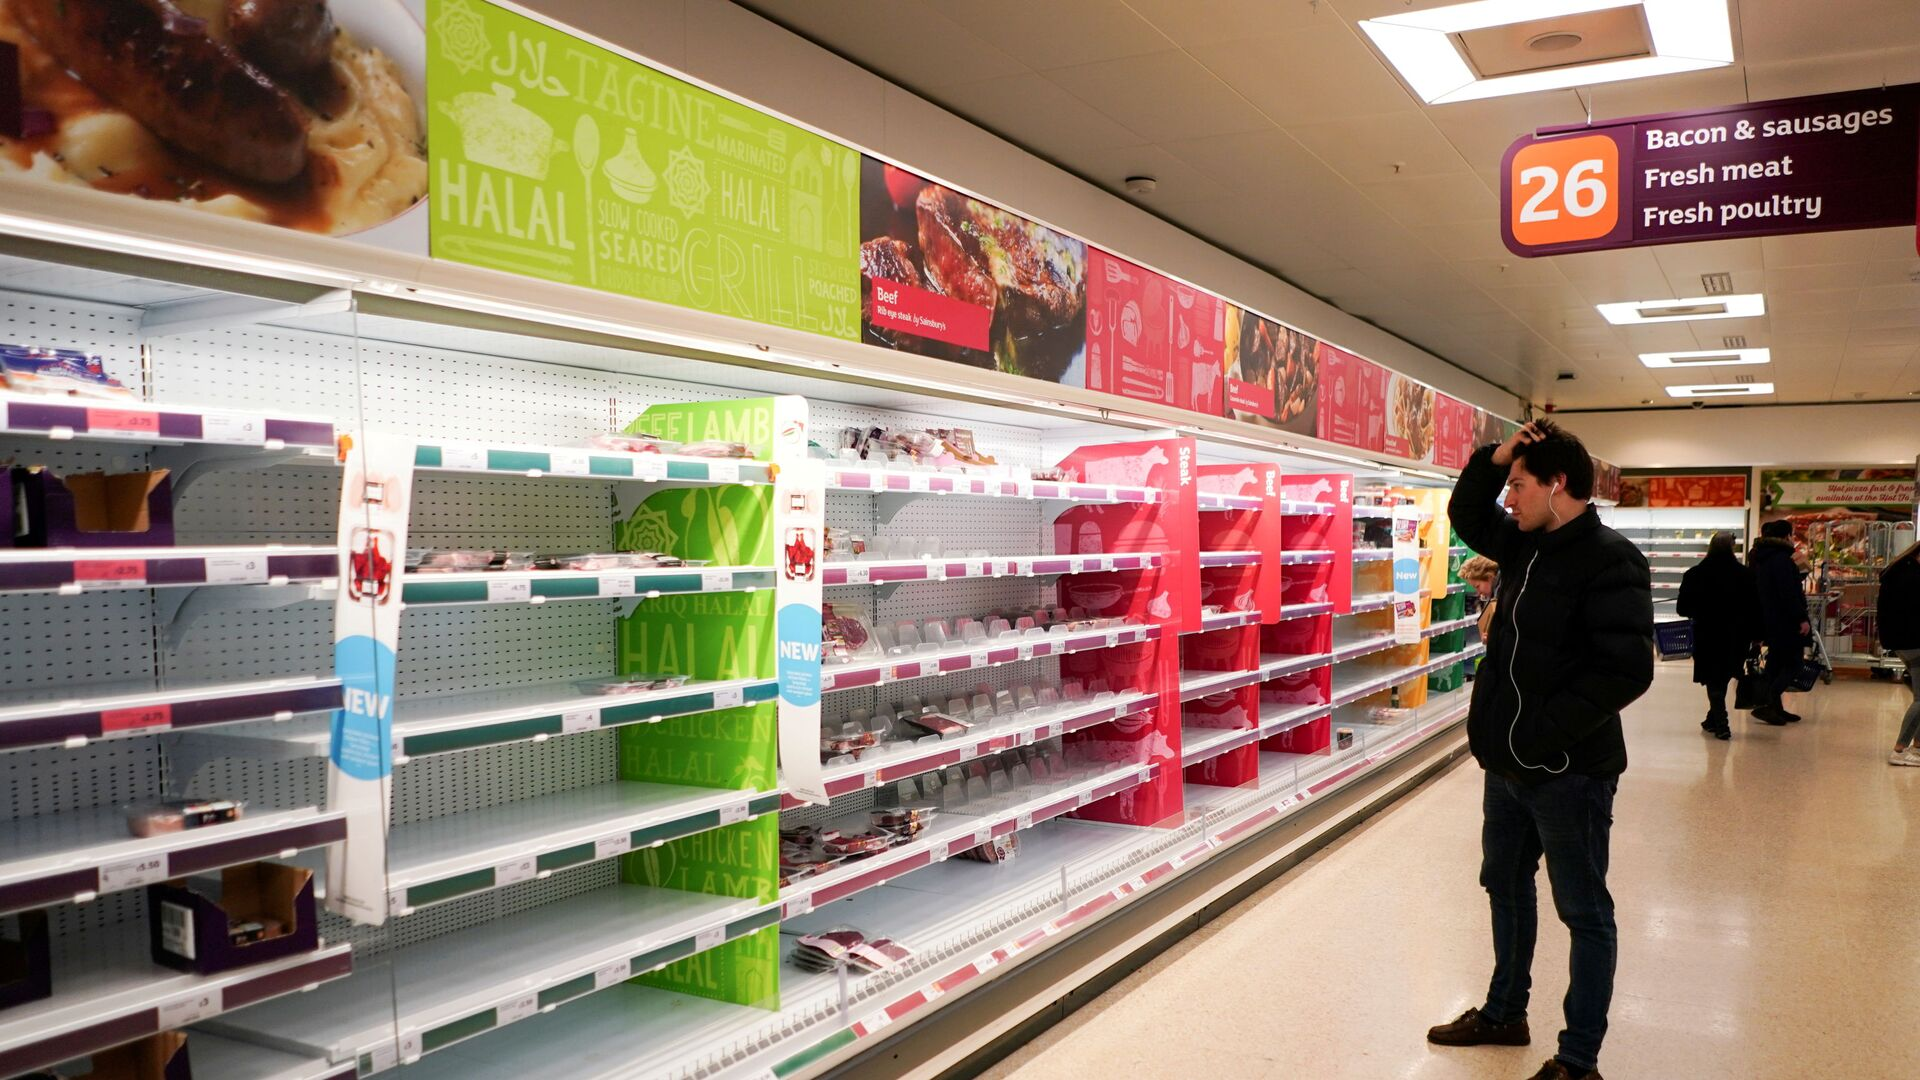 FILE PHOTO: A man stands next to shelves empty of fresh meat in a supermarket, as the number of worldwide coronavirus cases continues to grow,  in London, Britain, March 15, 2020 - Sputnik International, 1920, 20.09.2021